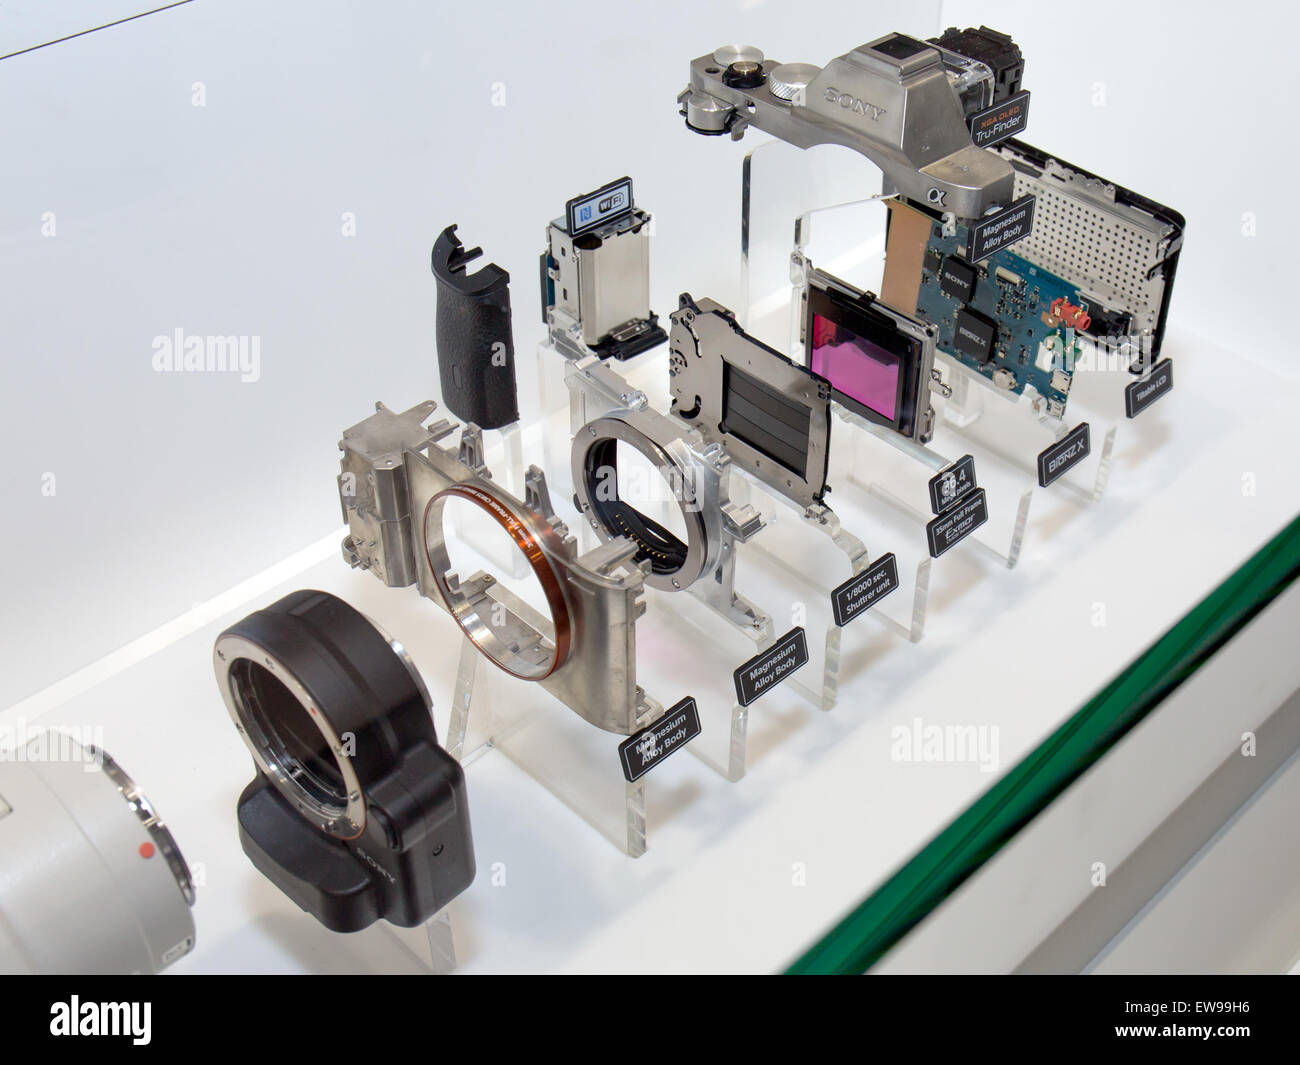 Sony Alpha ILCE-7R taken apart 2014 CP - Stock Image